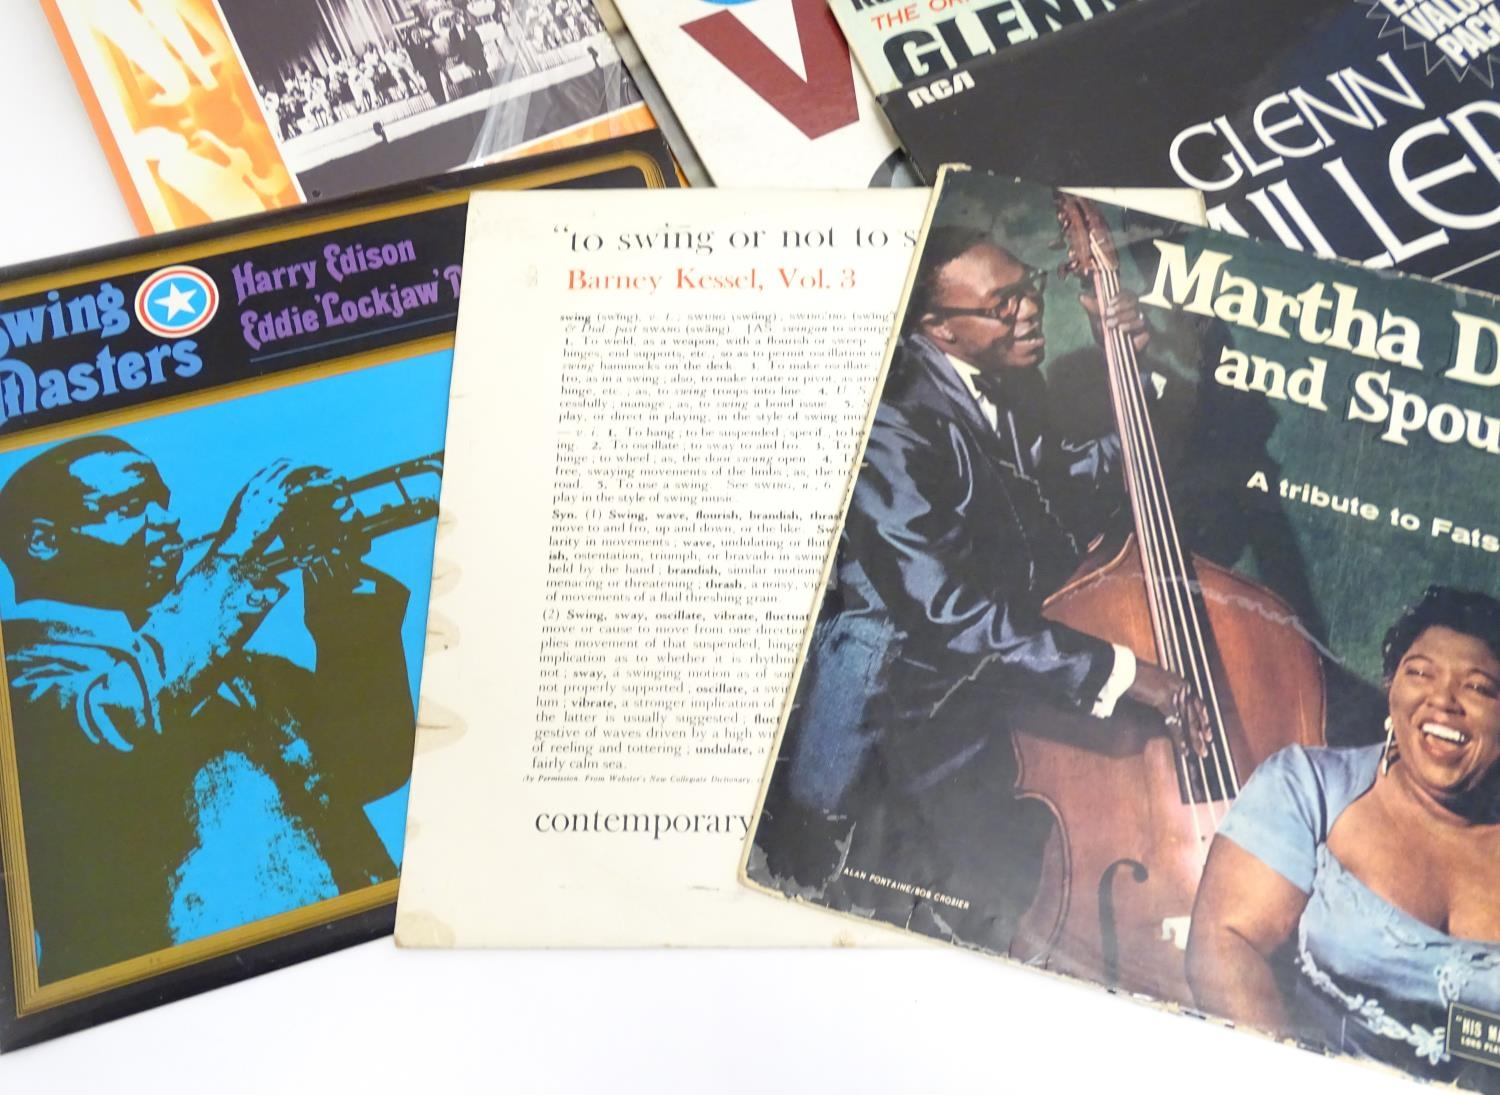 A collection of 20thC 33 rpm Vinyl records / LPs, Jazz, Big Band, Swing, comprising: Swing! (Coleman - Image 6 of 9